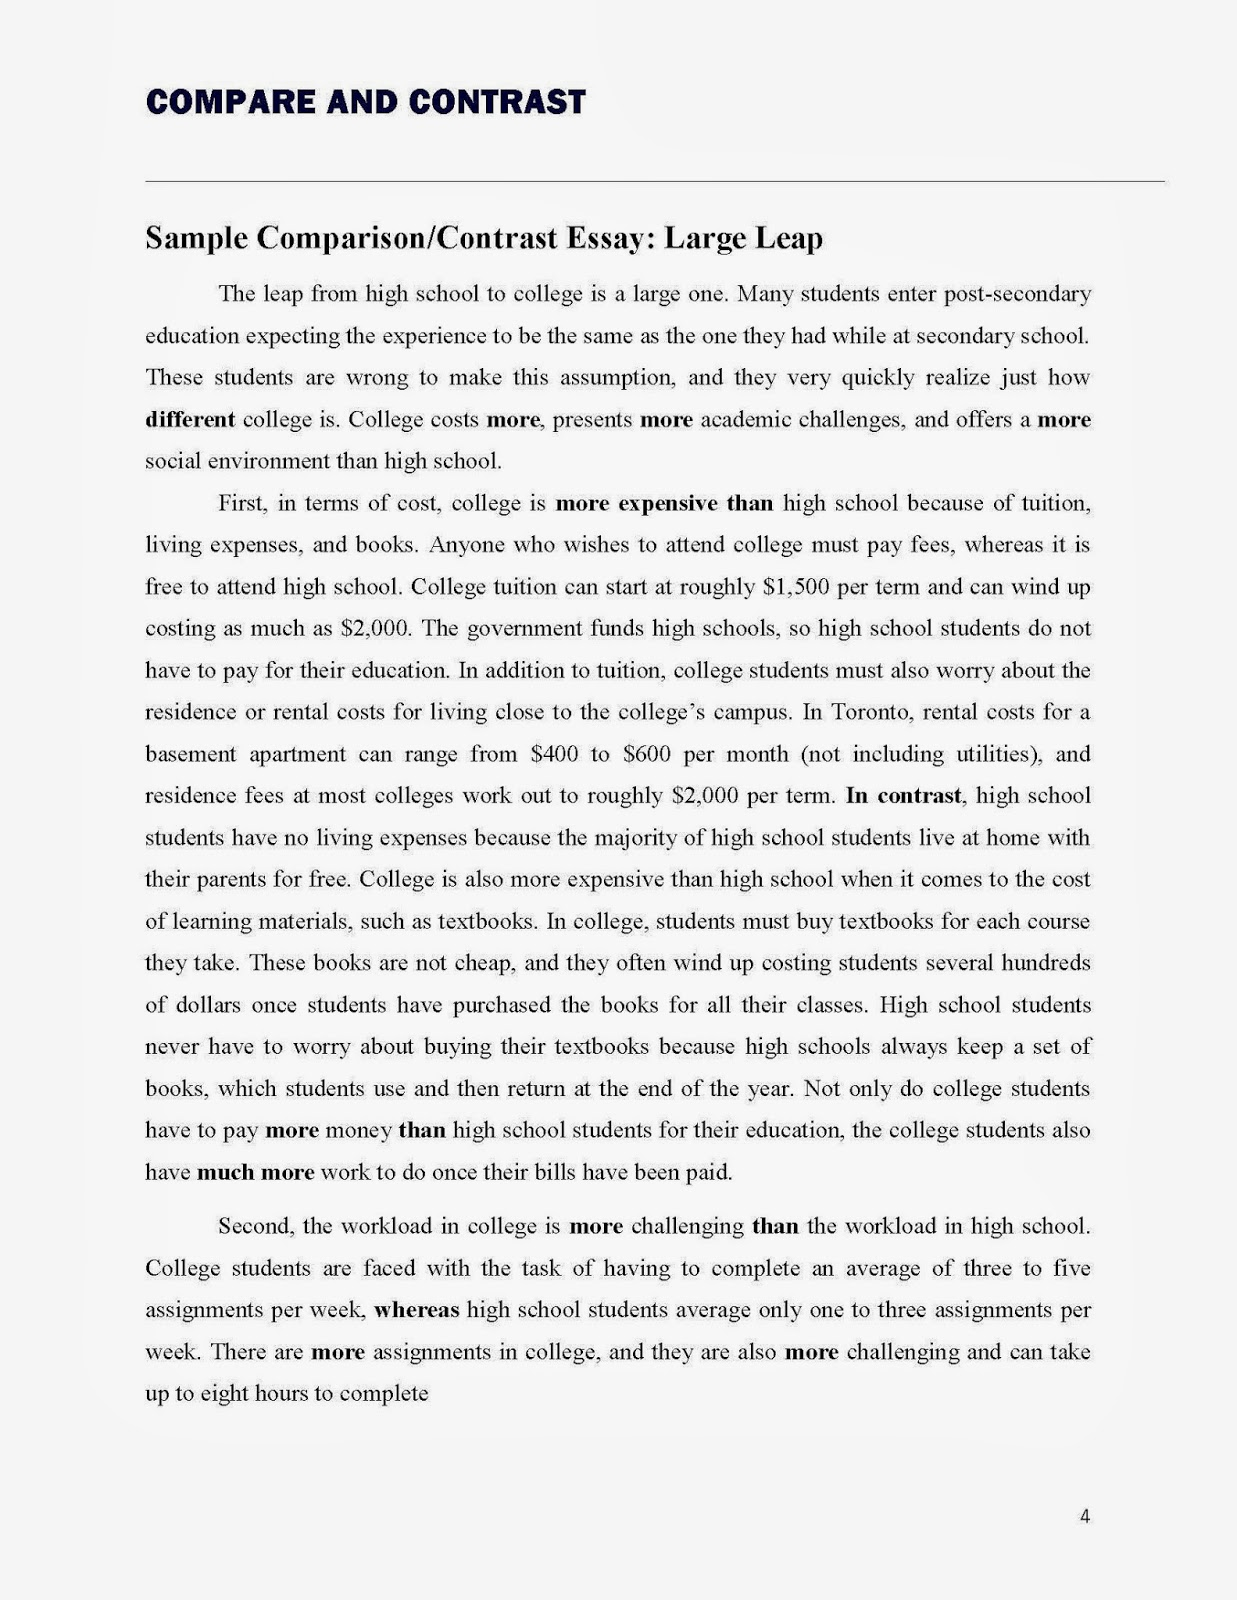 Essays On Huckleberry Finn Compare Contrast Essay Prompts Compare Contrast Essay Writing Compare And Contrast  Essay Prompt Liao Ipnodns Rucompare Information Age Essay also Should The Driving Age Be Raised To 18 Essay Comparison And Contrast Essay Examples College Essay On Poetry  Notre Dame Essays